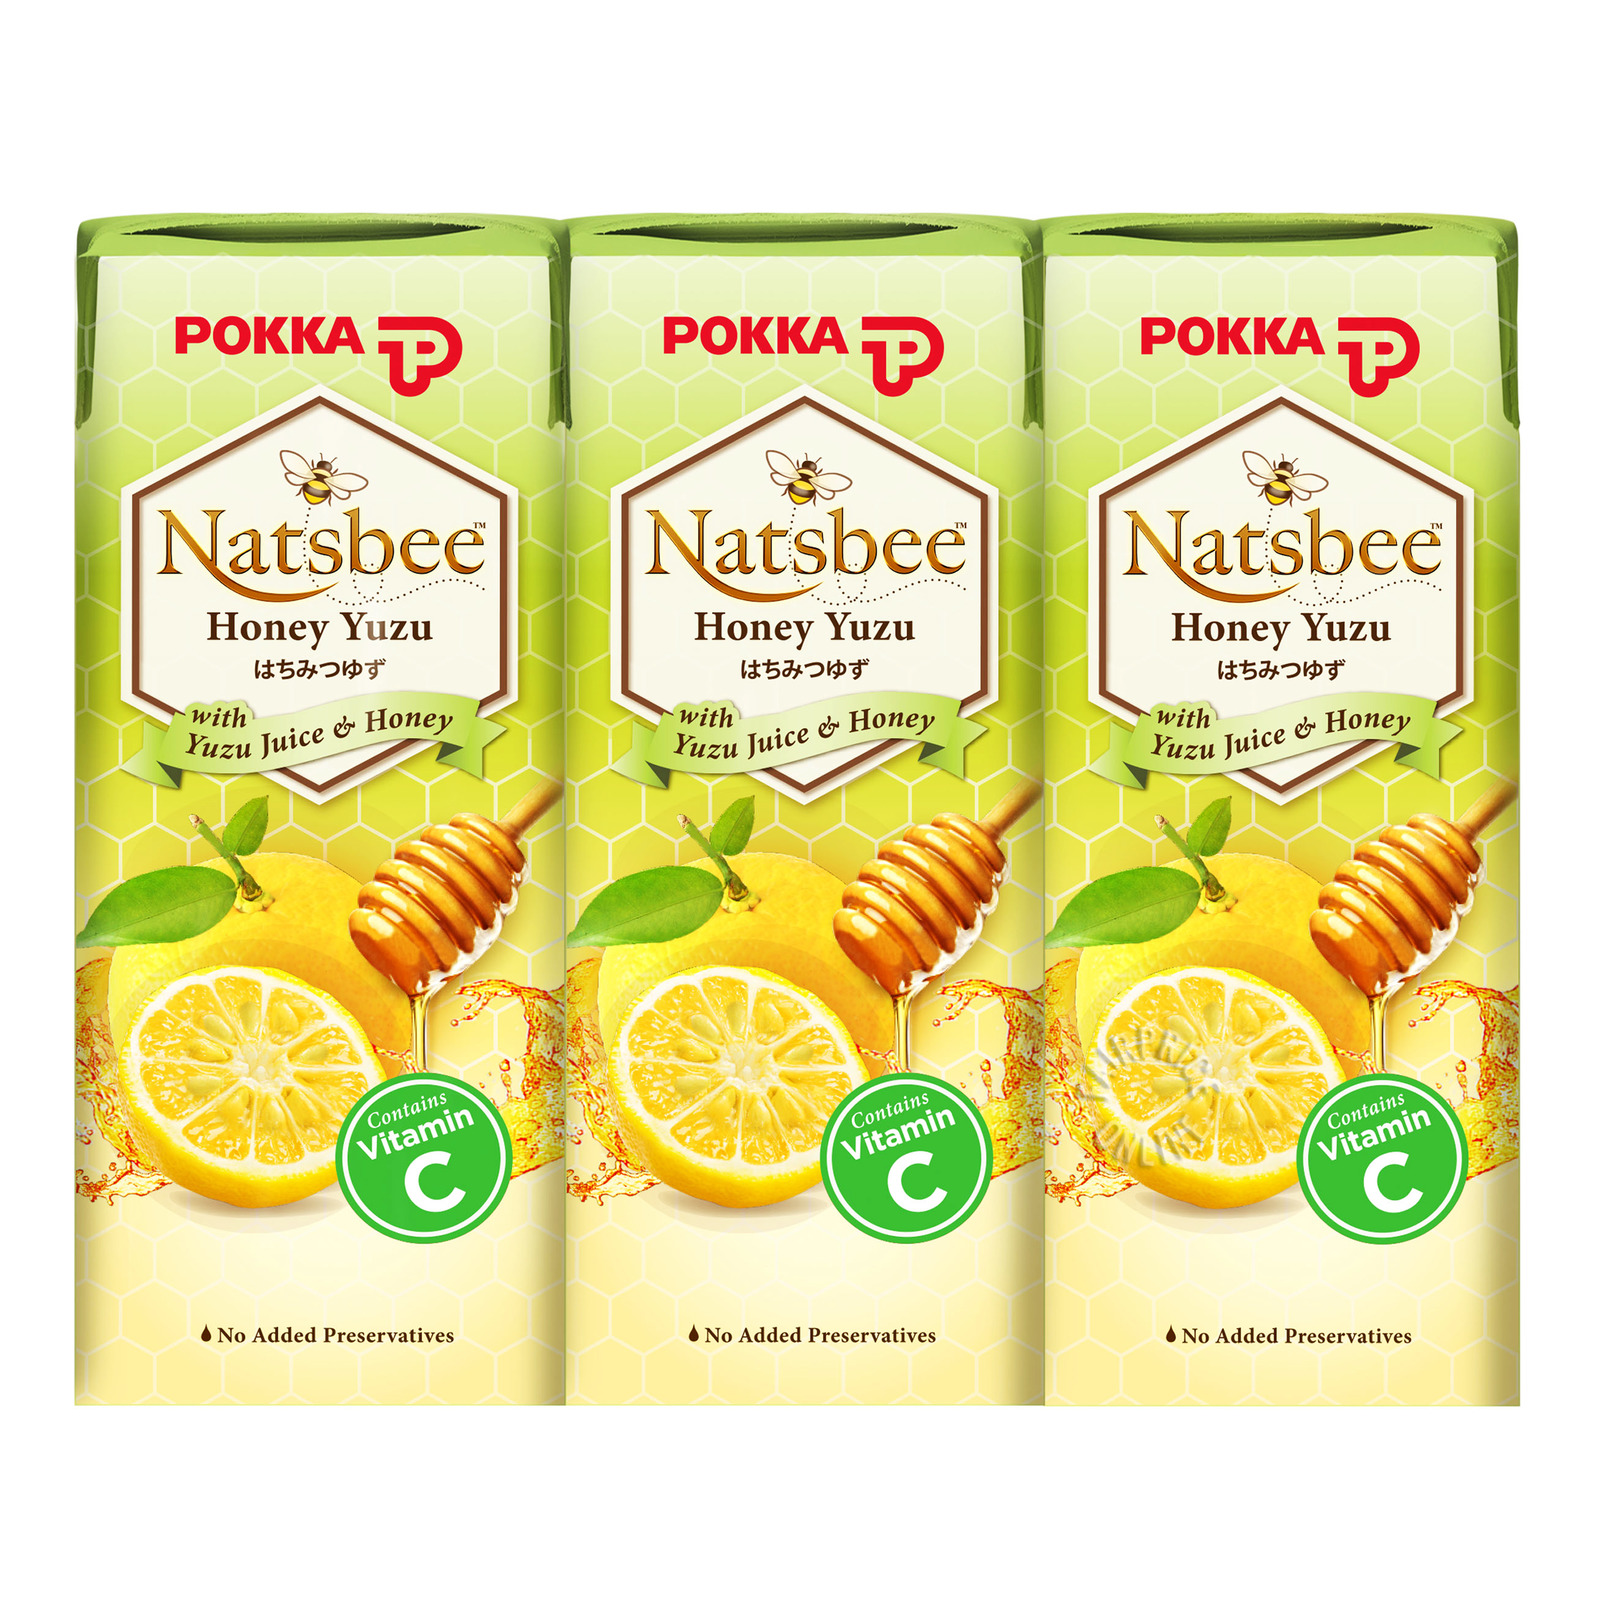 Pokka Nastbee Packet Drink - Honey Yuzu